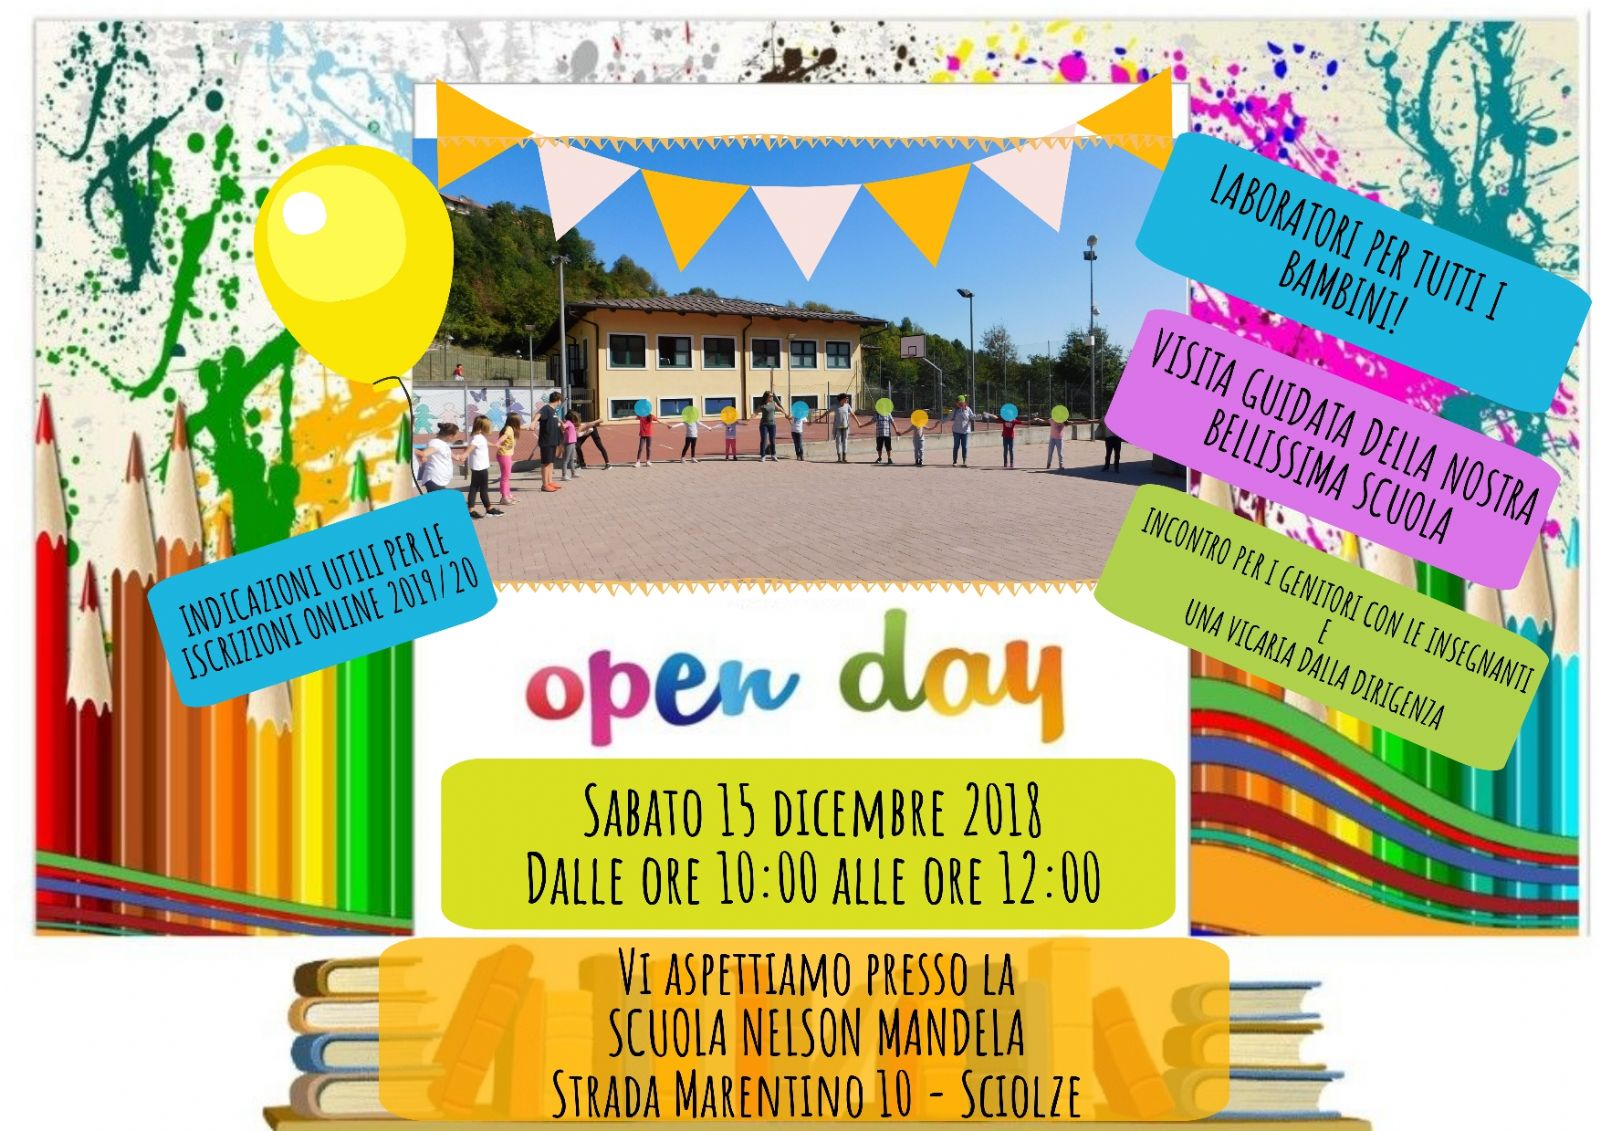 Giornata OPEN DAY